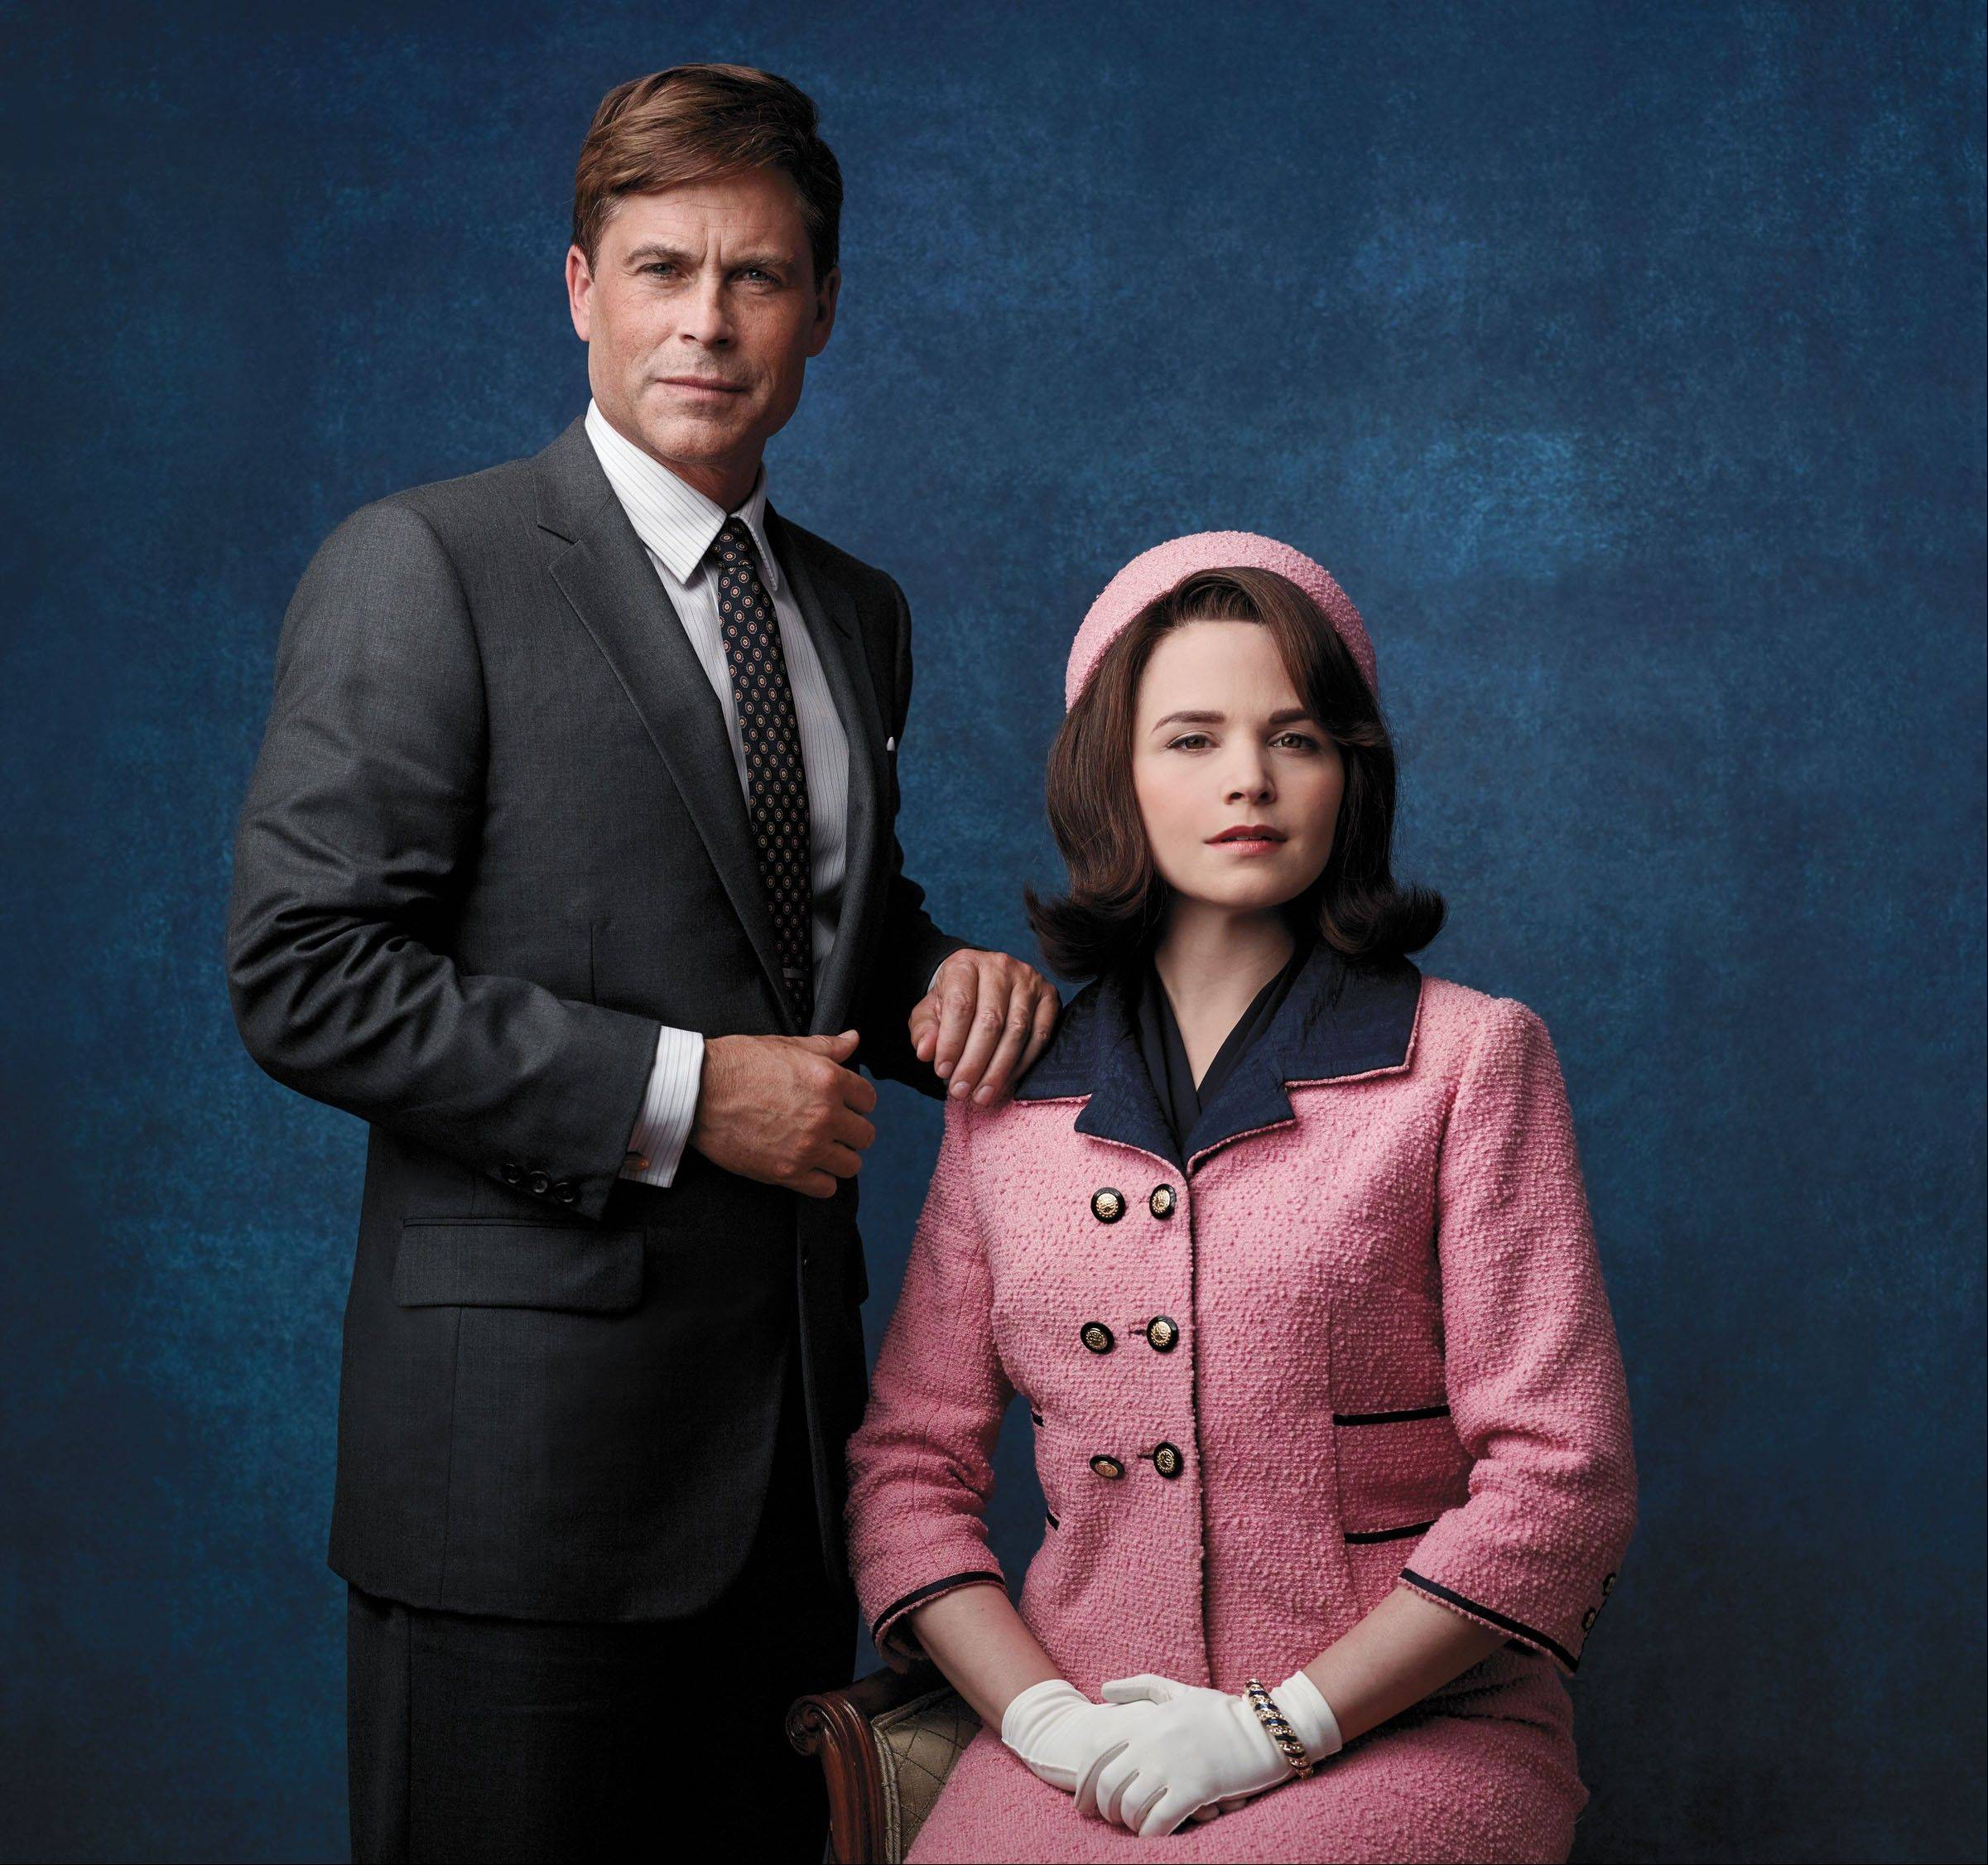 """There's a connection playing him that is certainly deeper than playing other roles,"" Rob Lowe said of playing President John F. Kennedy in ""Killing Kennedy."" Ginnifer Goodwin portrays Jackie Kennedy in the movie."